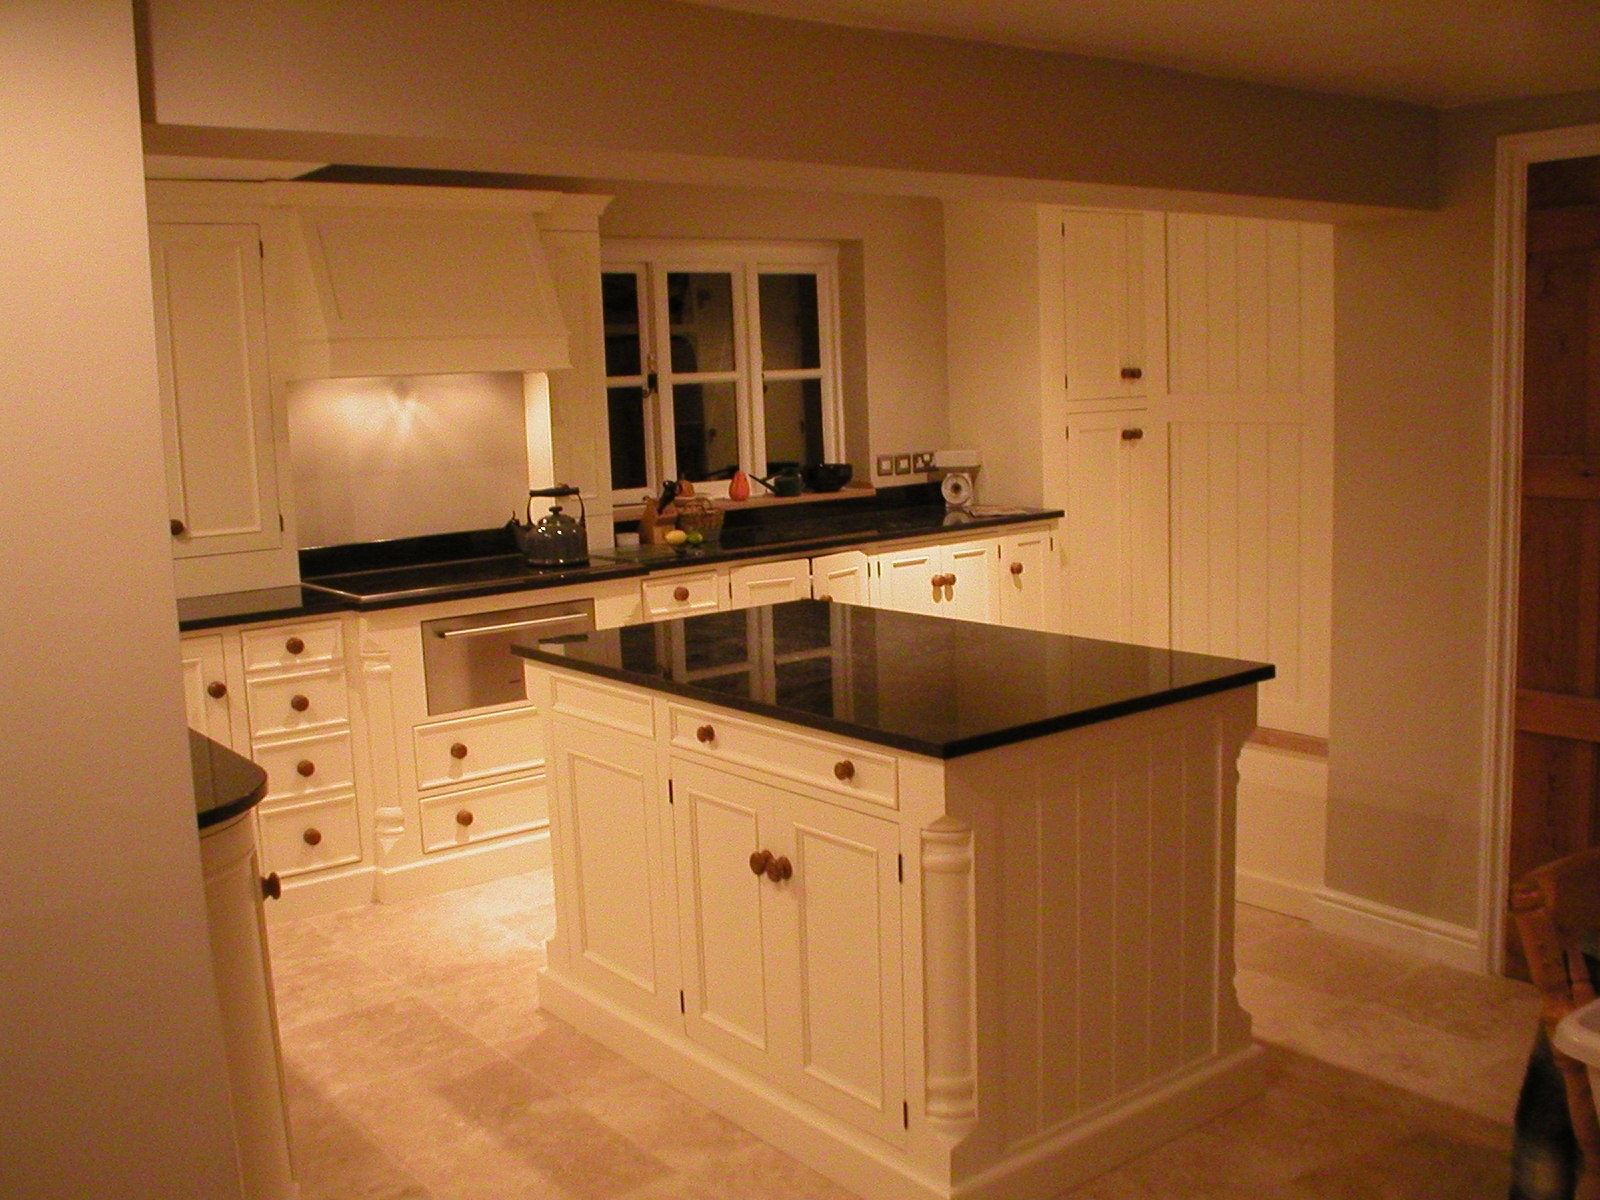 Bespoke kitchen units cabinets furniture handmade in kent for Unit kitchen designs